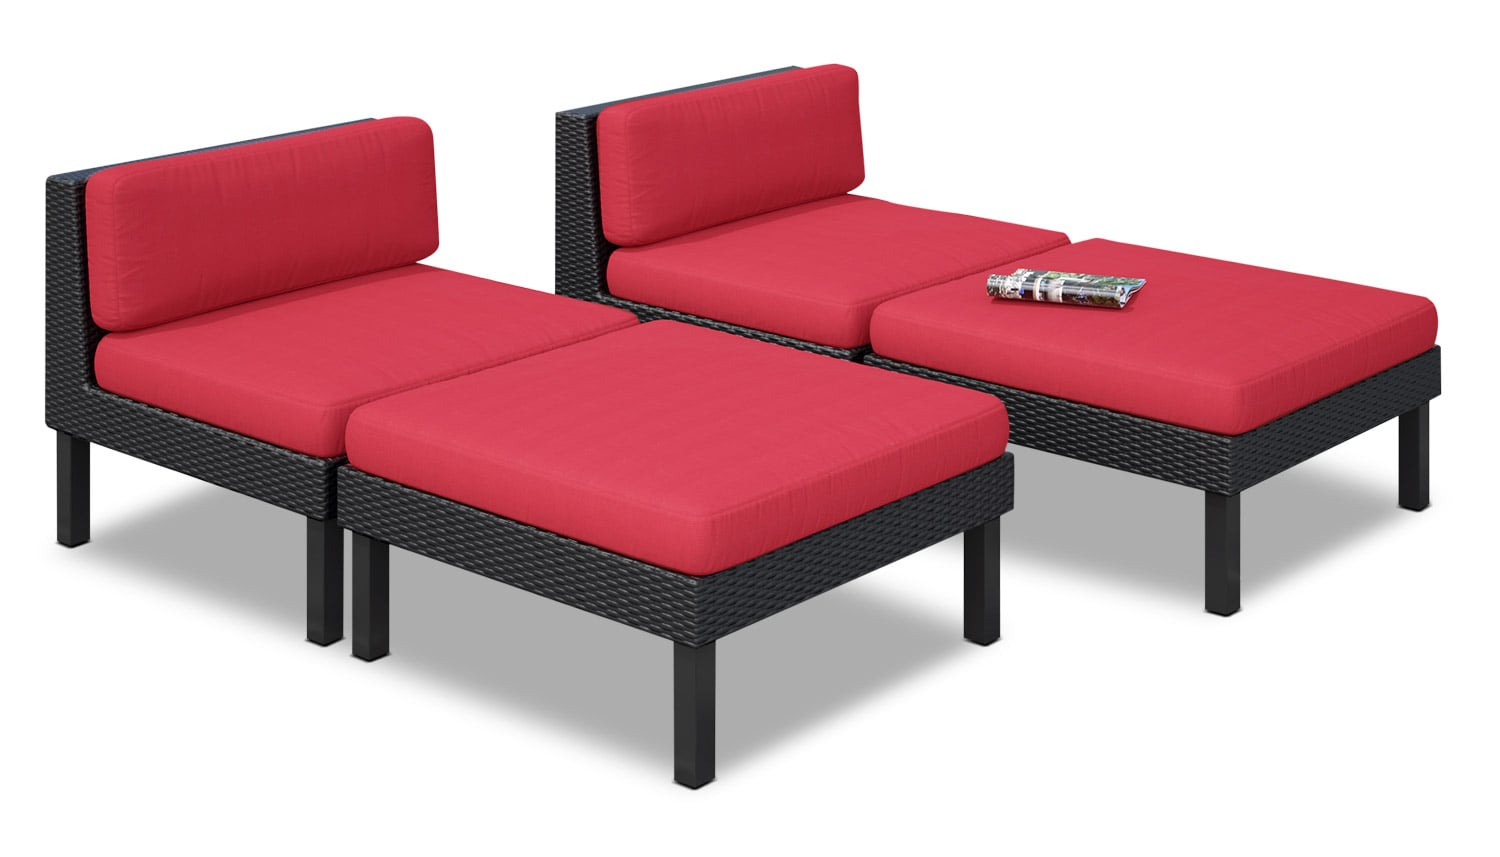 Oakland 4-Piece Lounger Set – Red